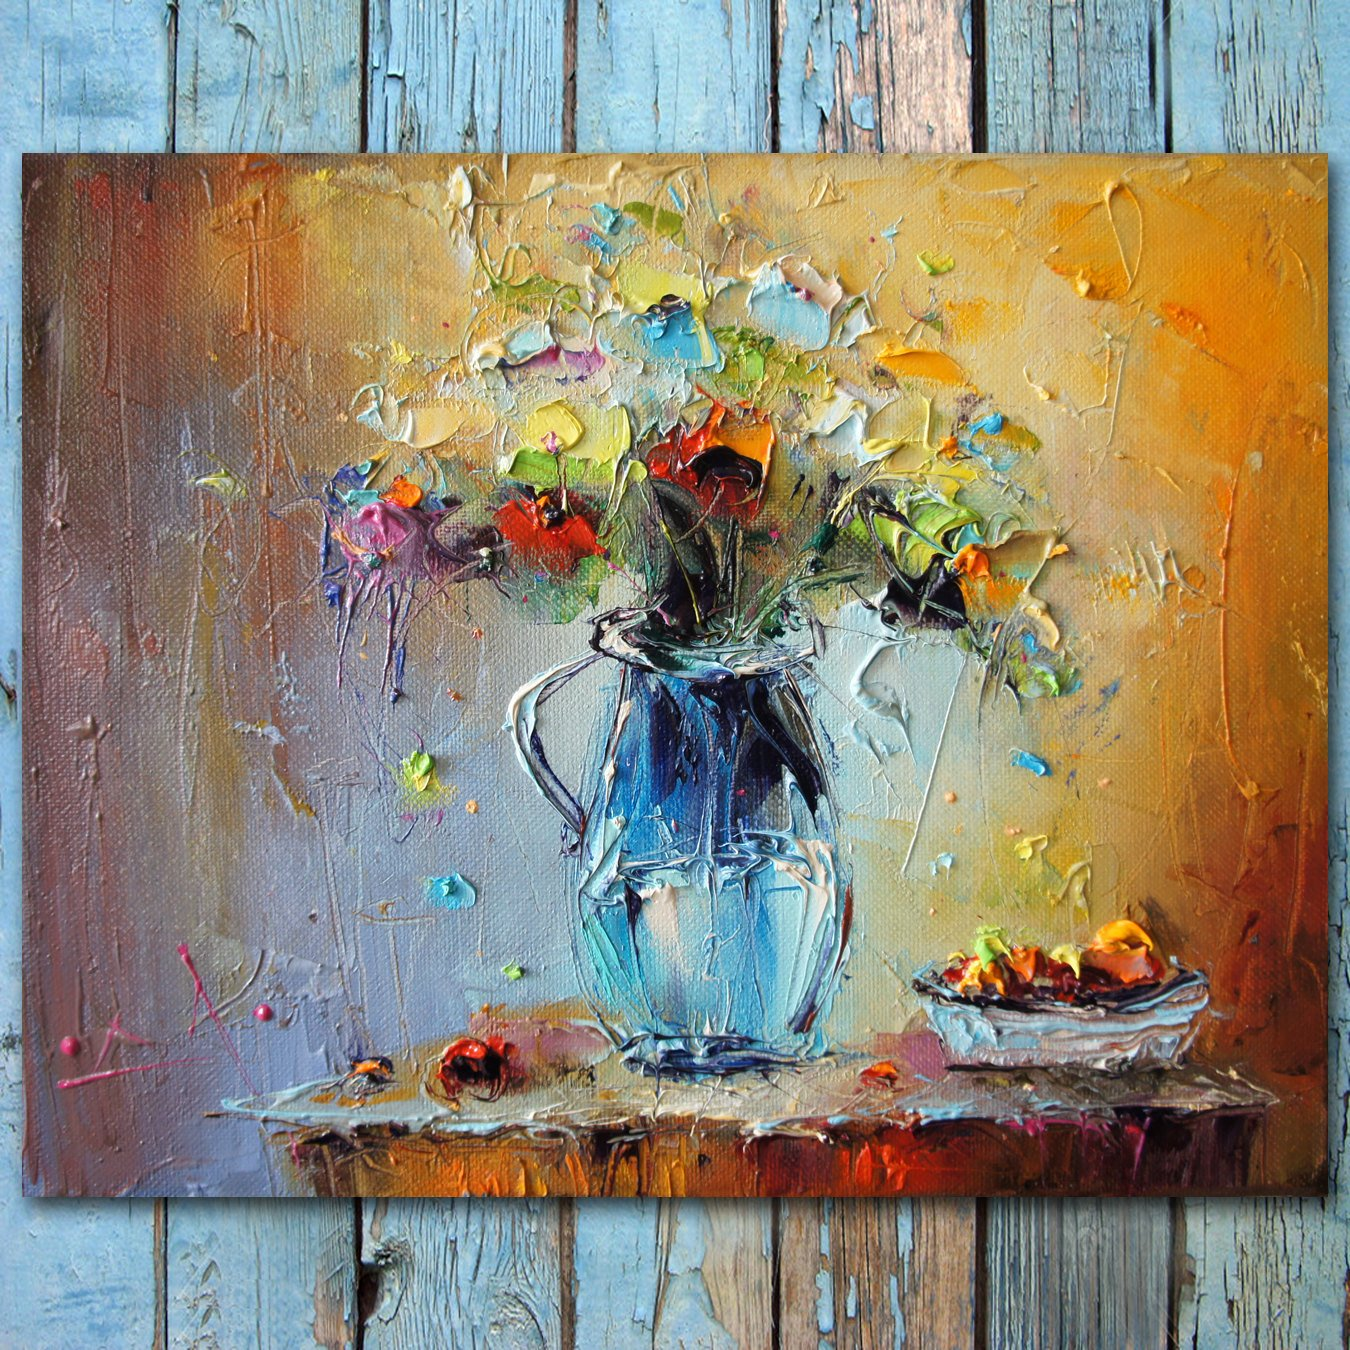 Modern Abstract Flower Paintings Awesome Palette Knife Flowers Oil Painting Colorful Still Life